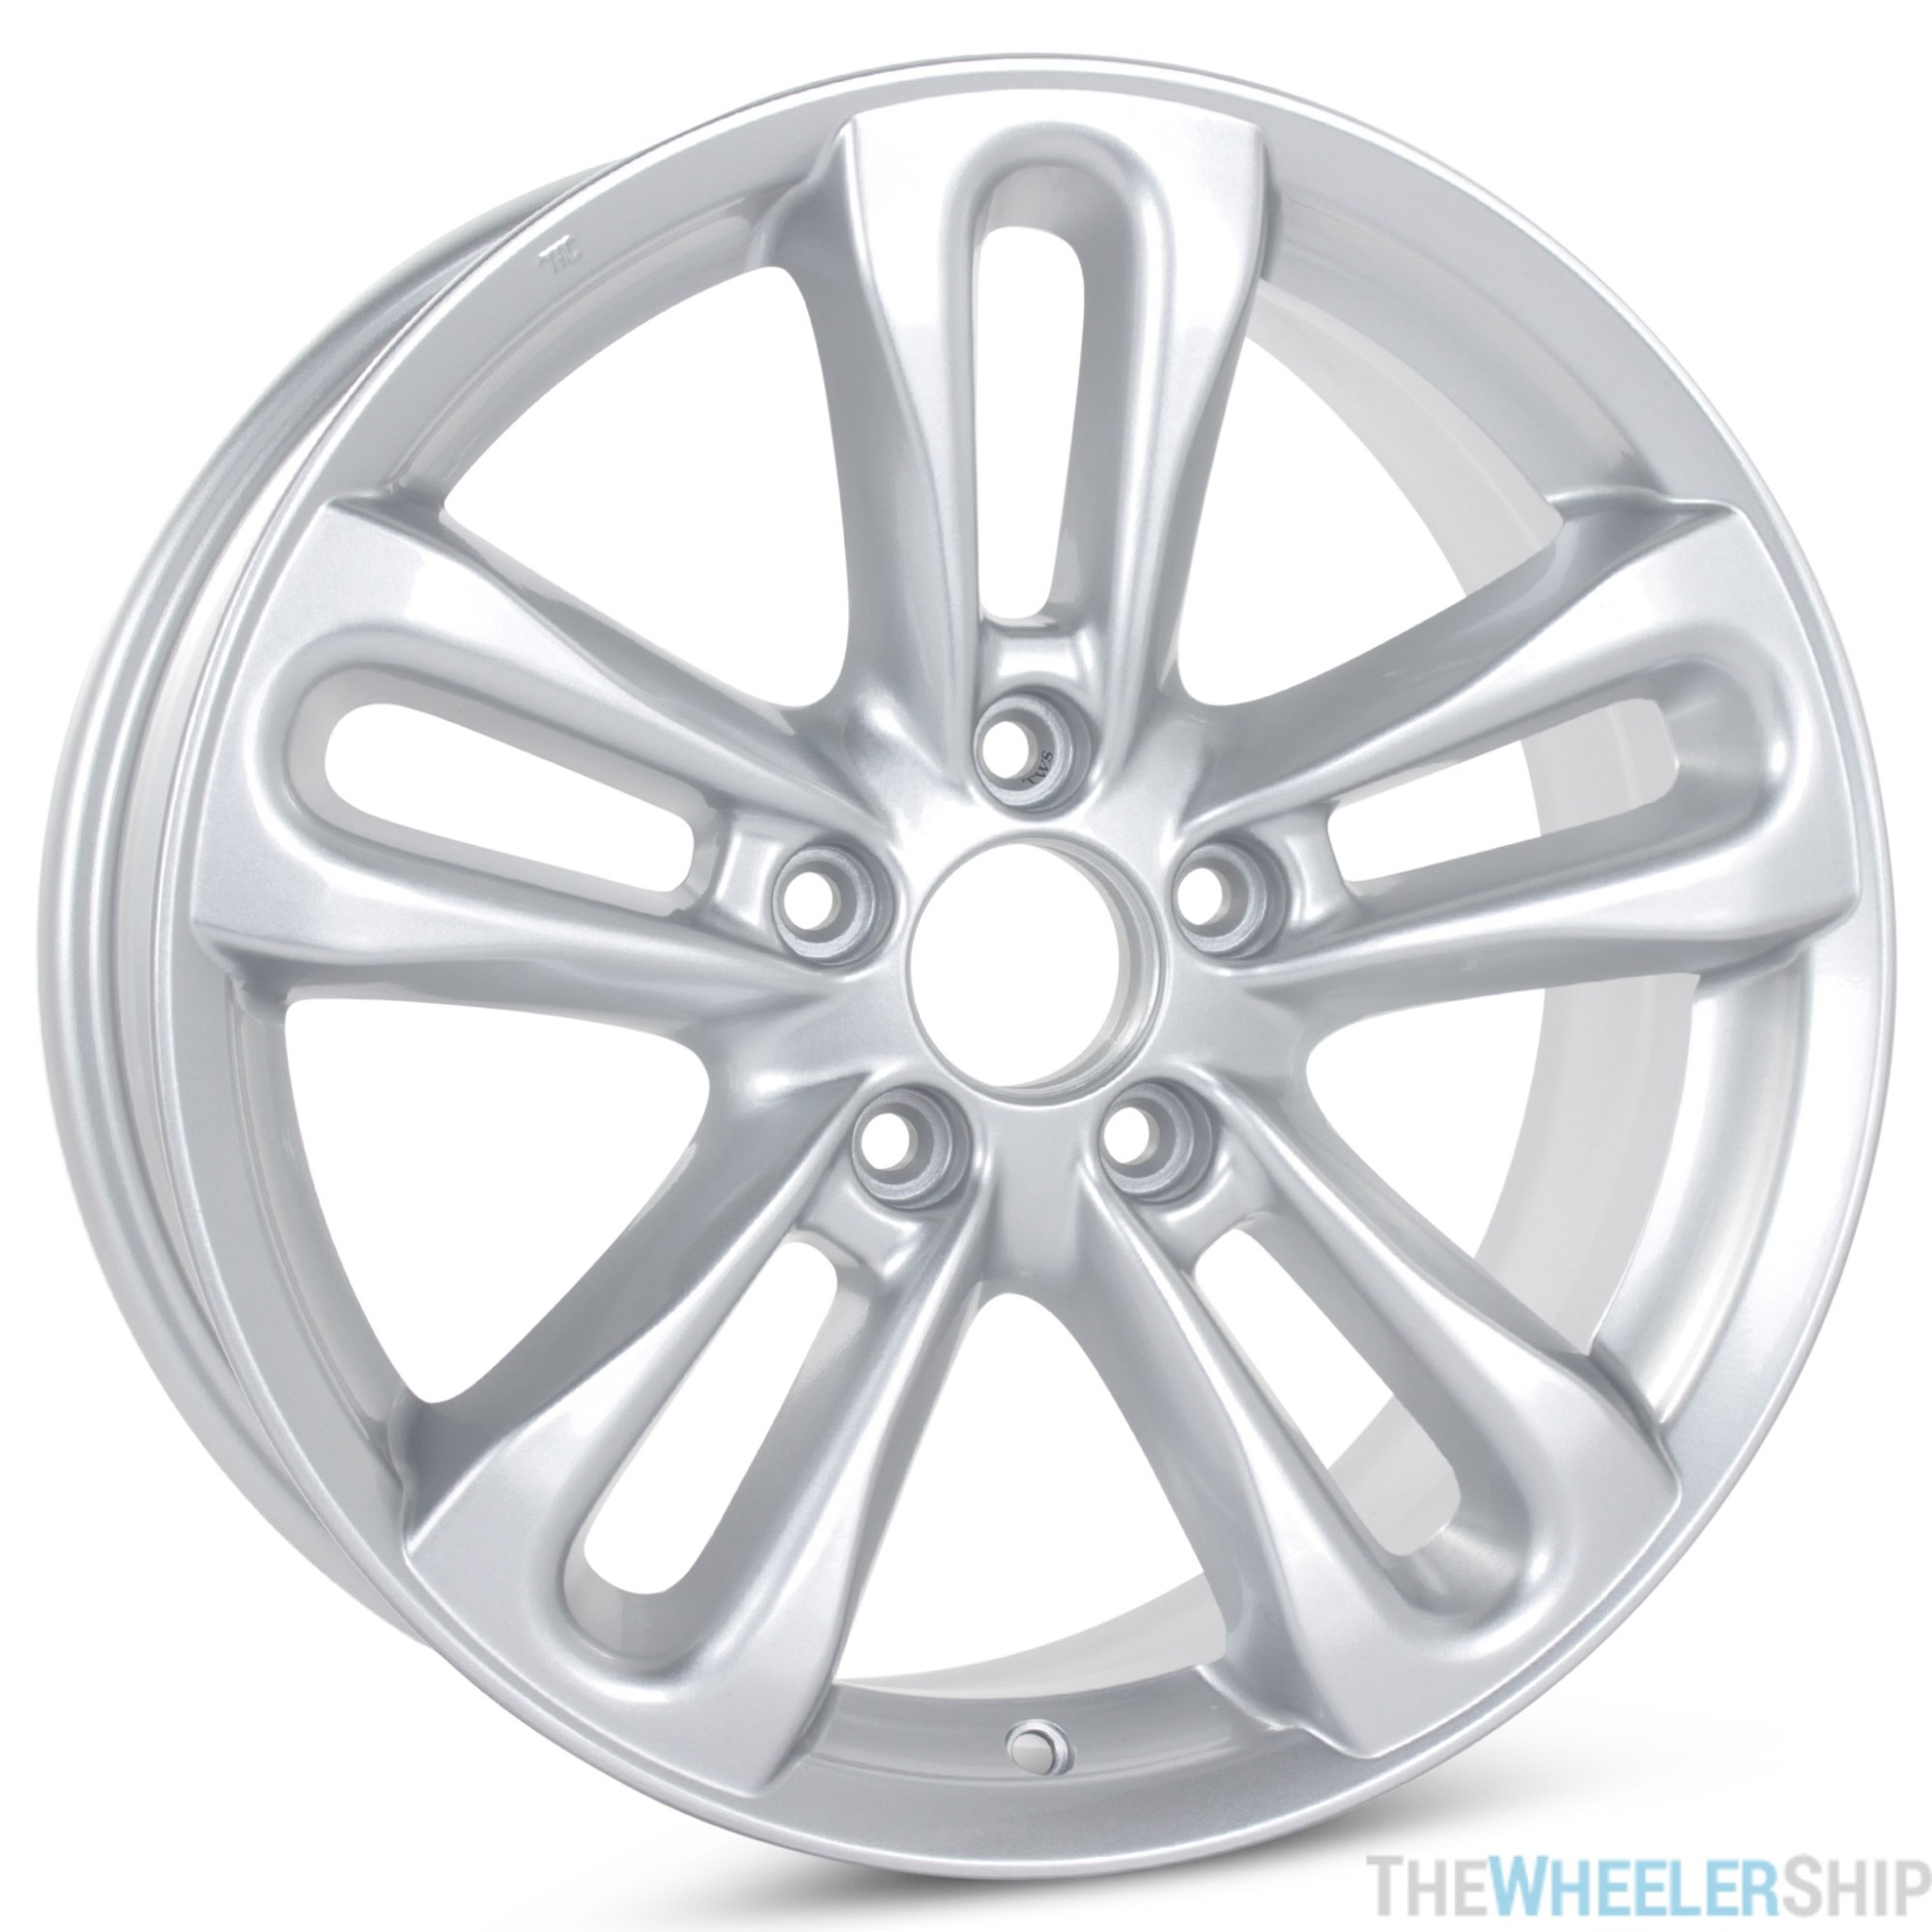 hight resolution of new 17 x 7 replacement wheel for honda civic 2006 2007 2008 rim 63901